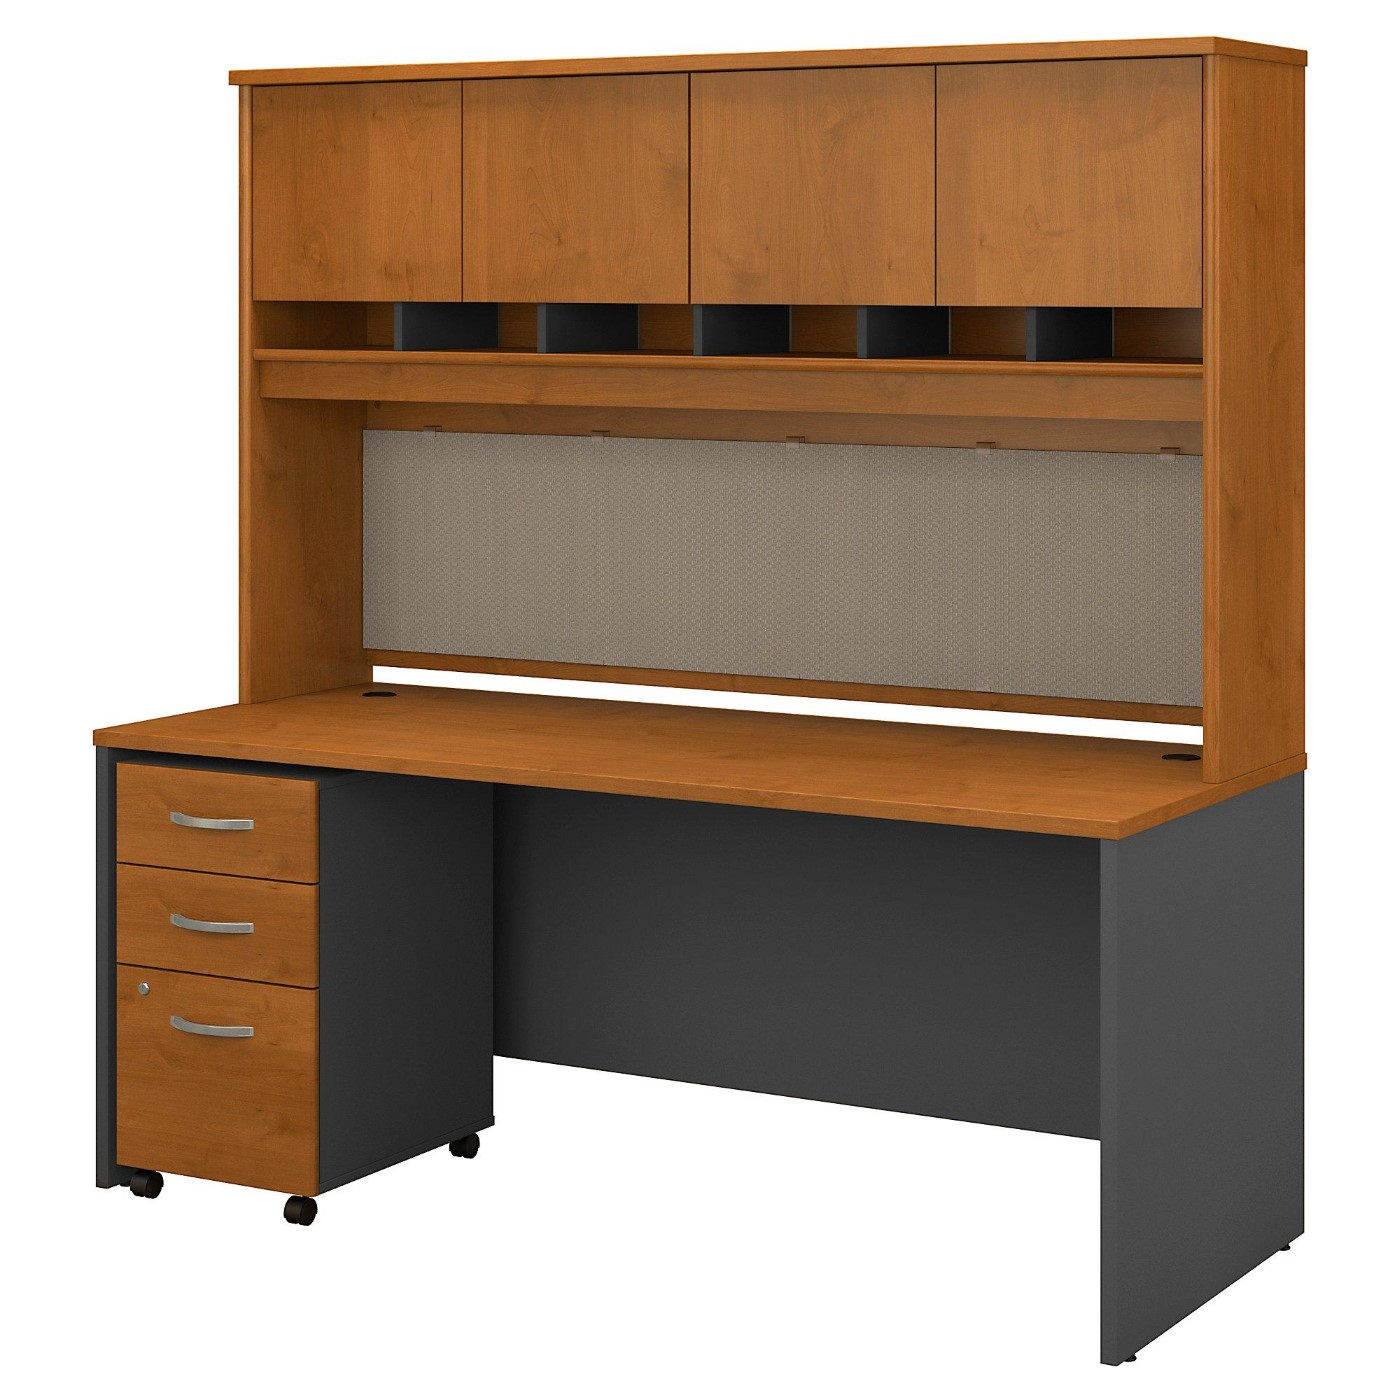 <font color=#c60><b>BUSH BUSINESS FURNITURE SERIES C 72W X 30D OFFICE DESK WITH HUTCH AND MOBILE FILE CABINET. FREE SHIPPING</font></b></font></b>